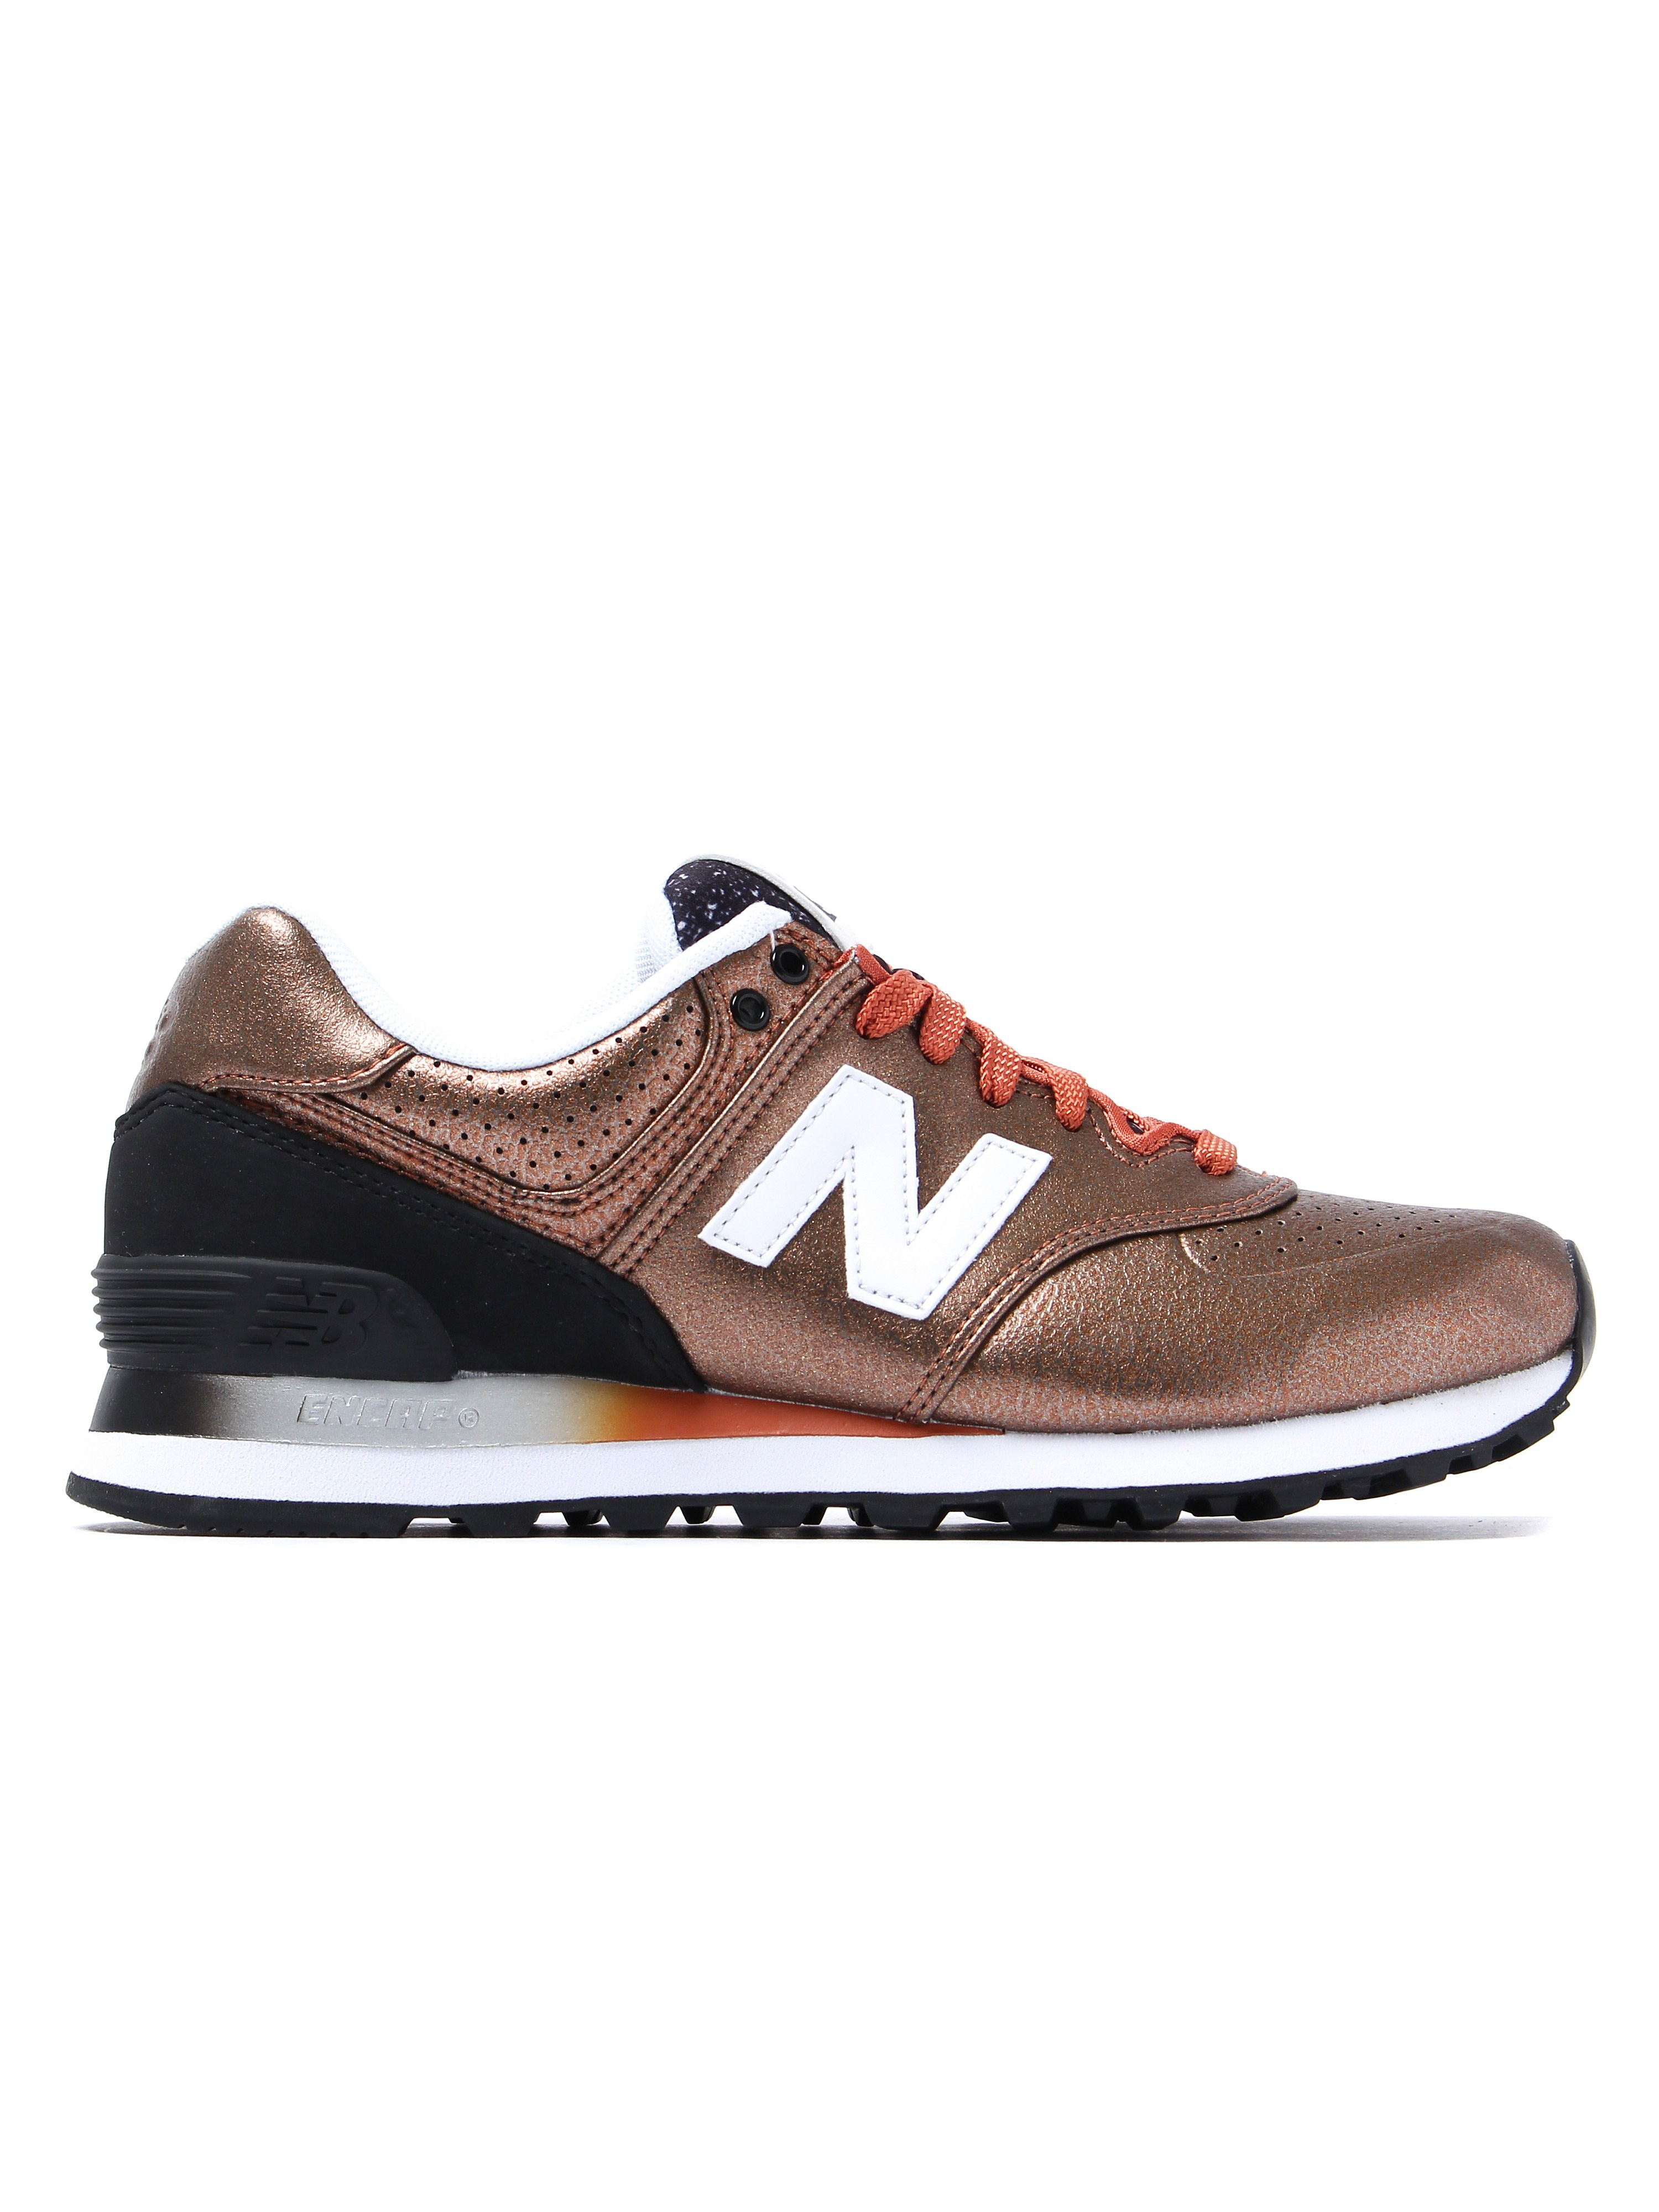 New Balance Women's 574 Low Top Trainers - Rose Gold Leather